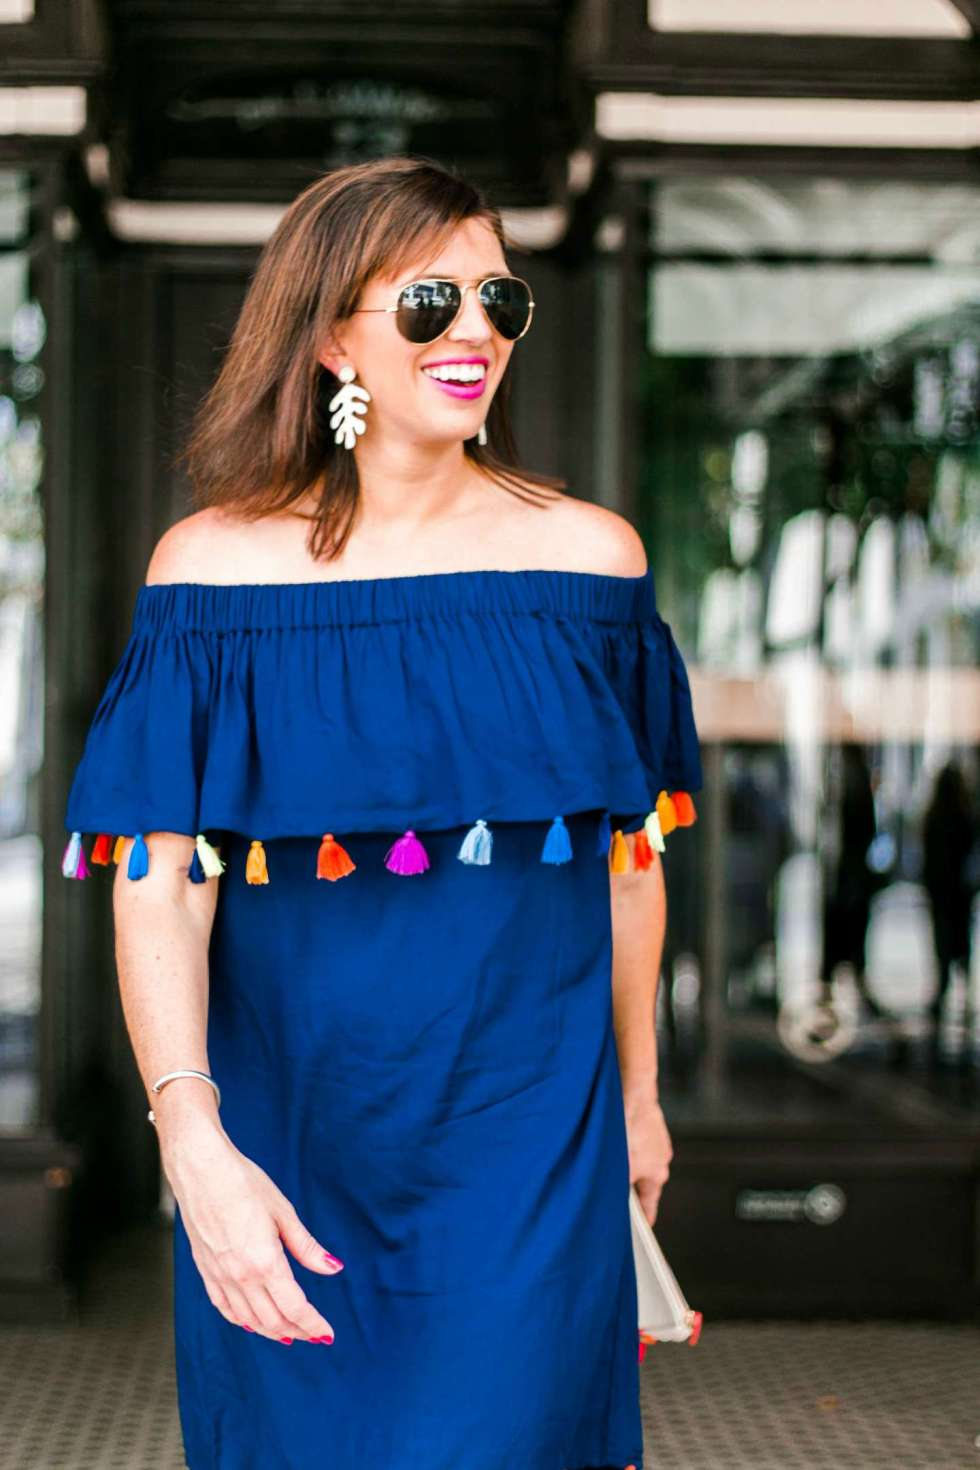 OTS Tassels & Lace Up Wedges - I'm Fixin' To - @mbg0112